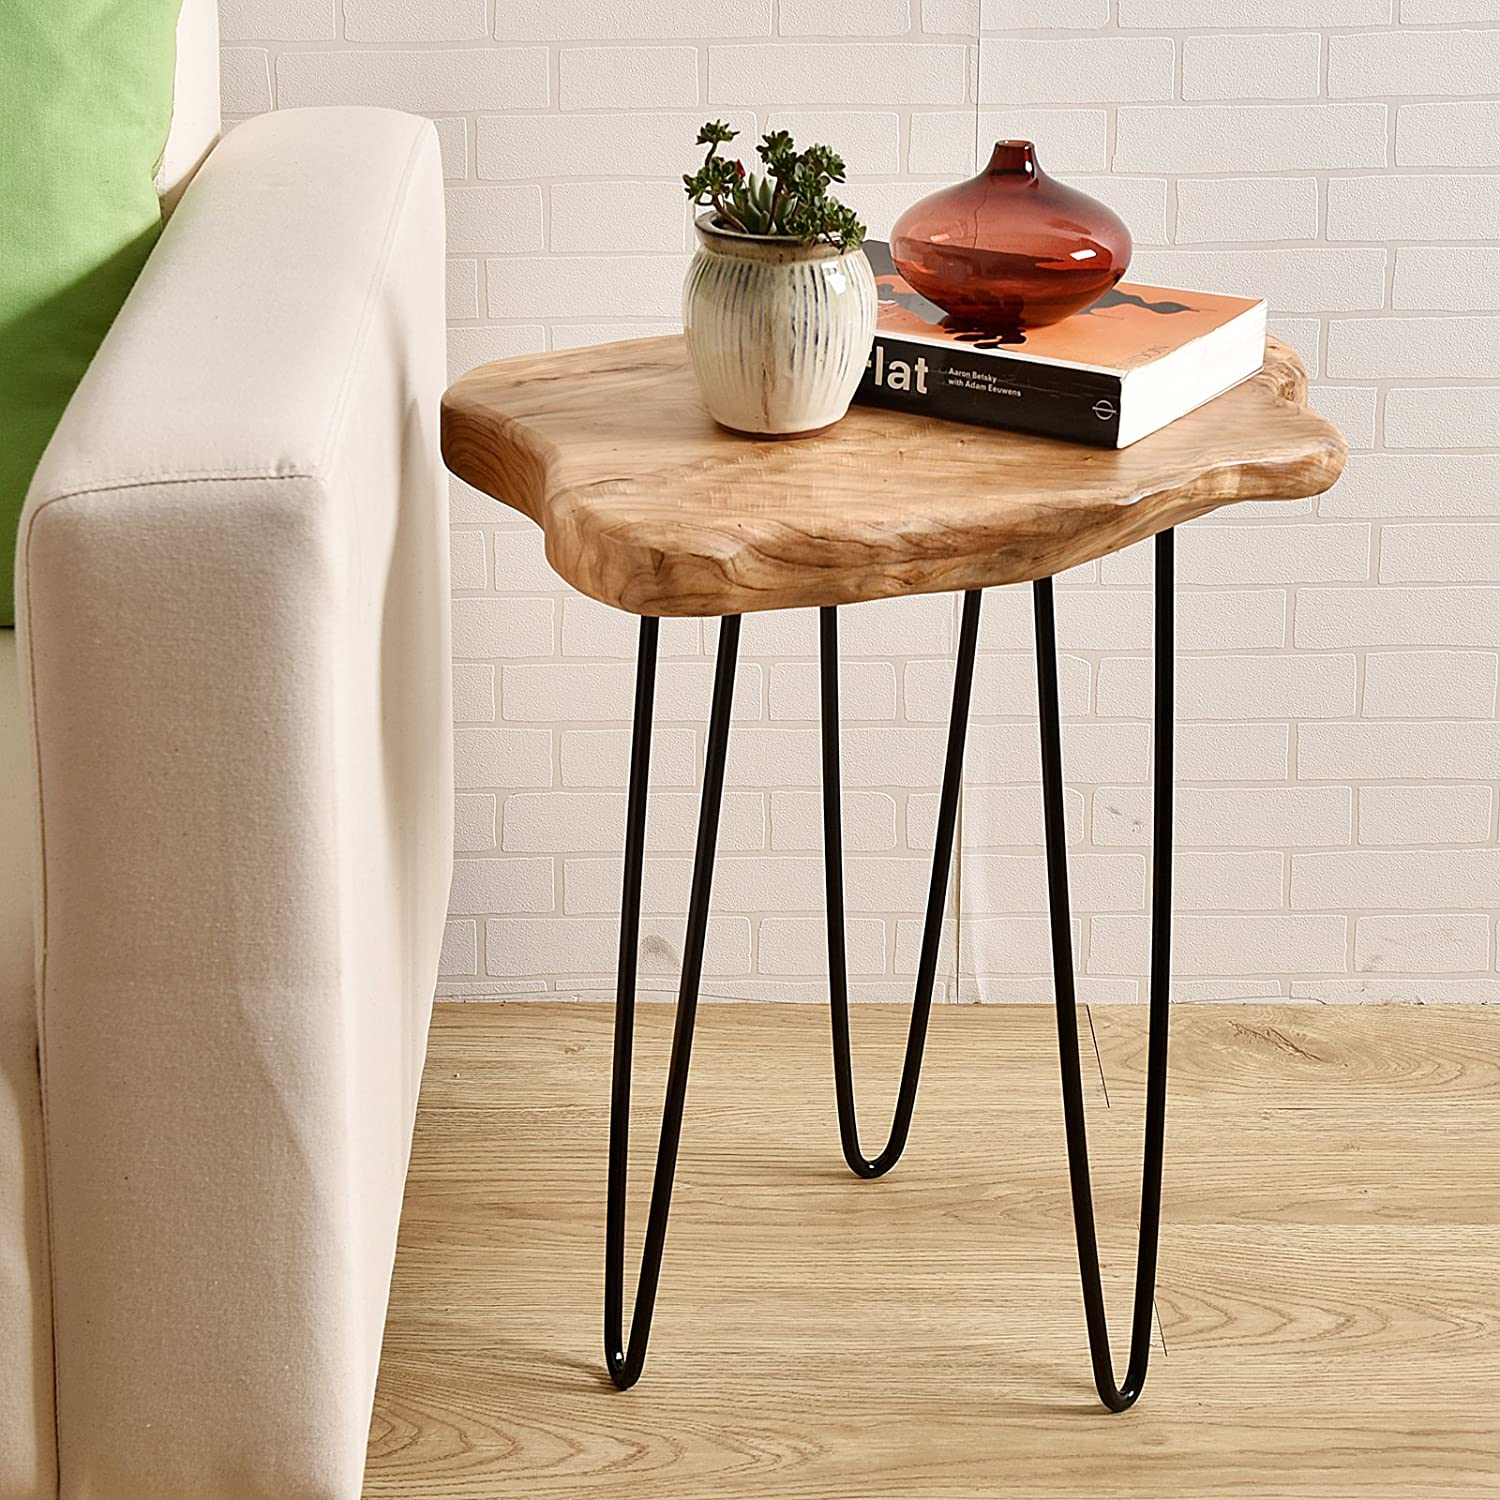 "WELLAND Natural Edge End Table, Wood Side Table, Nightstand, Plant Stand 20.5"" Tall"